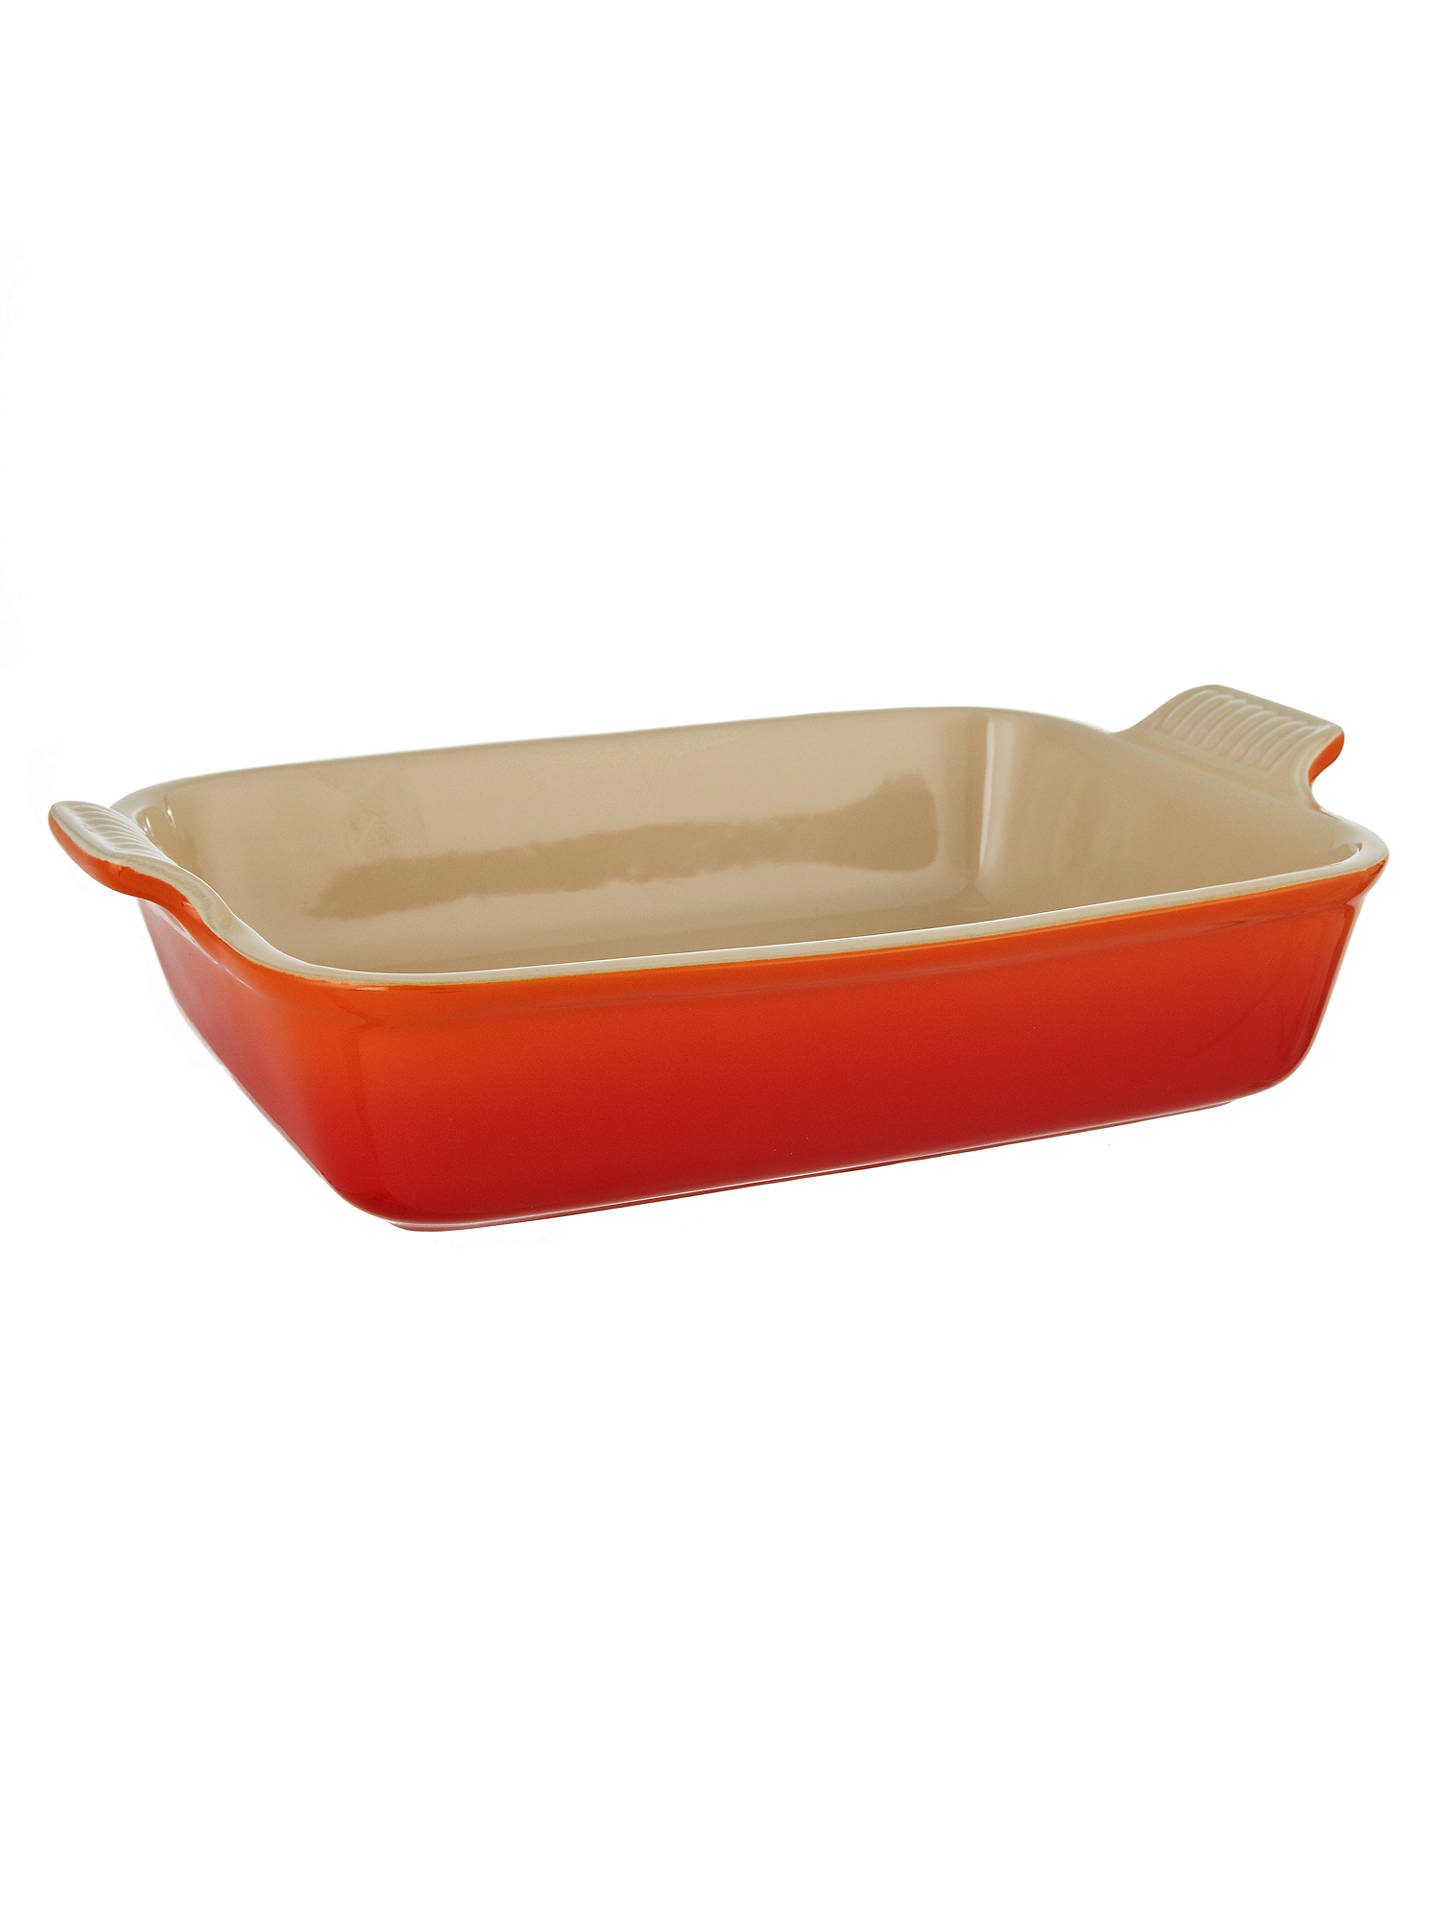 Le Creuset Stoneware Bakeware Serving Dish 32cm Orange Colour Bakeware & Ovenware